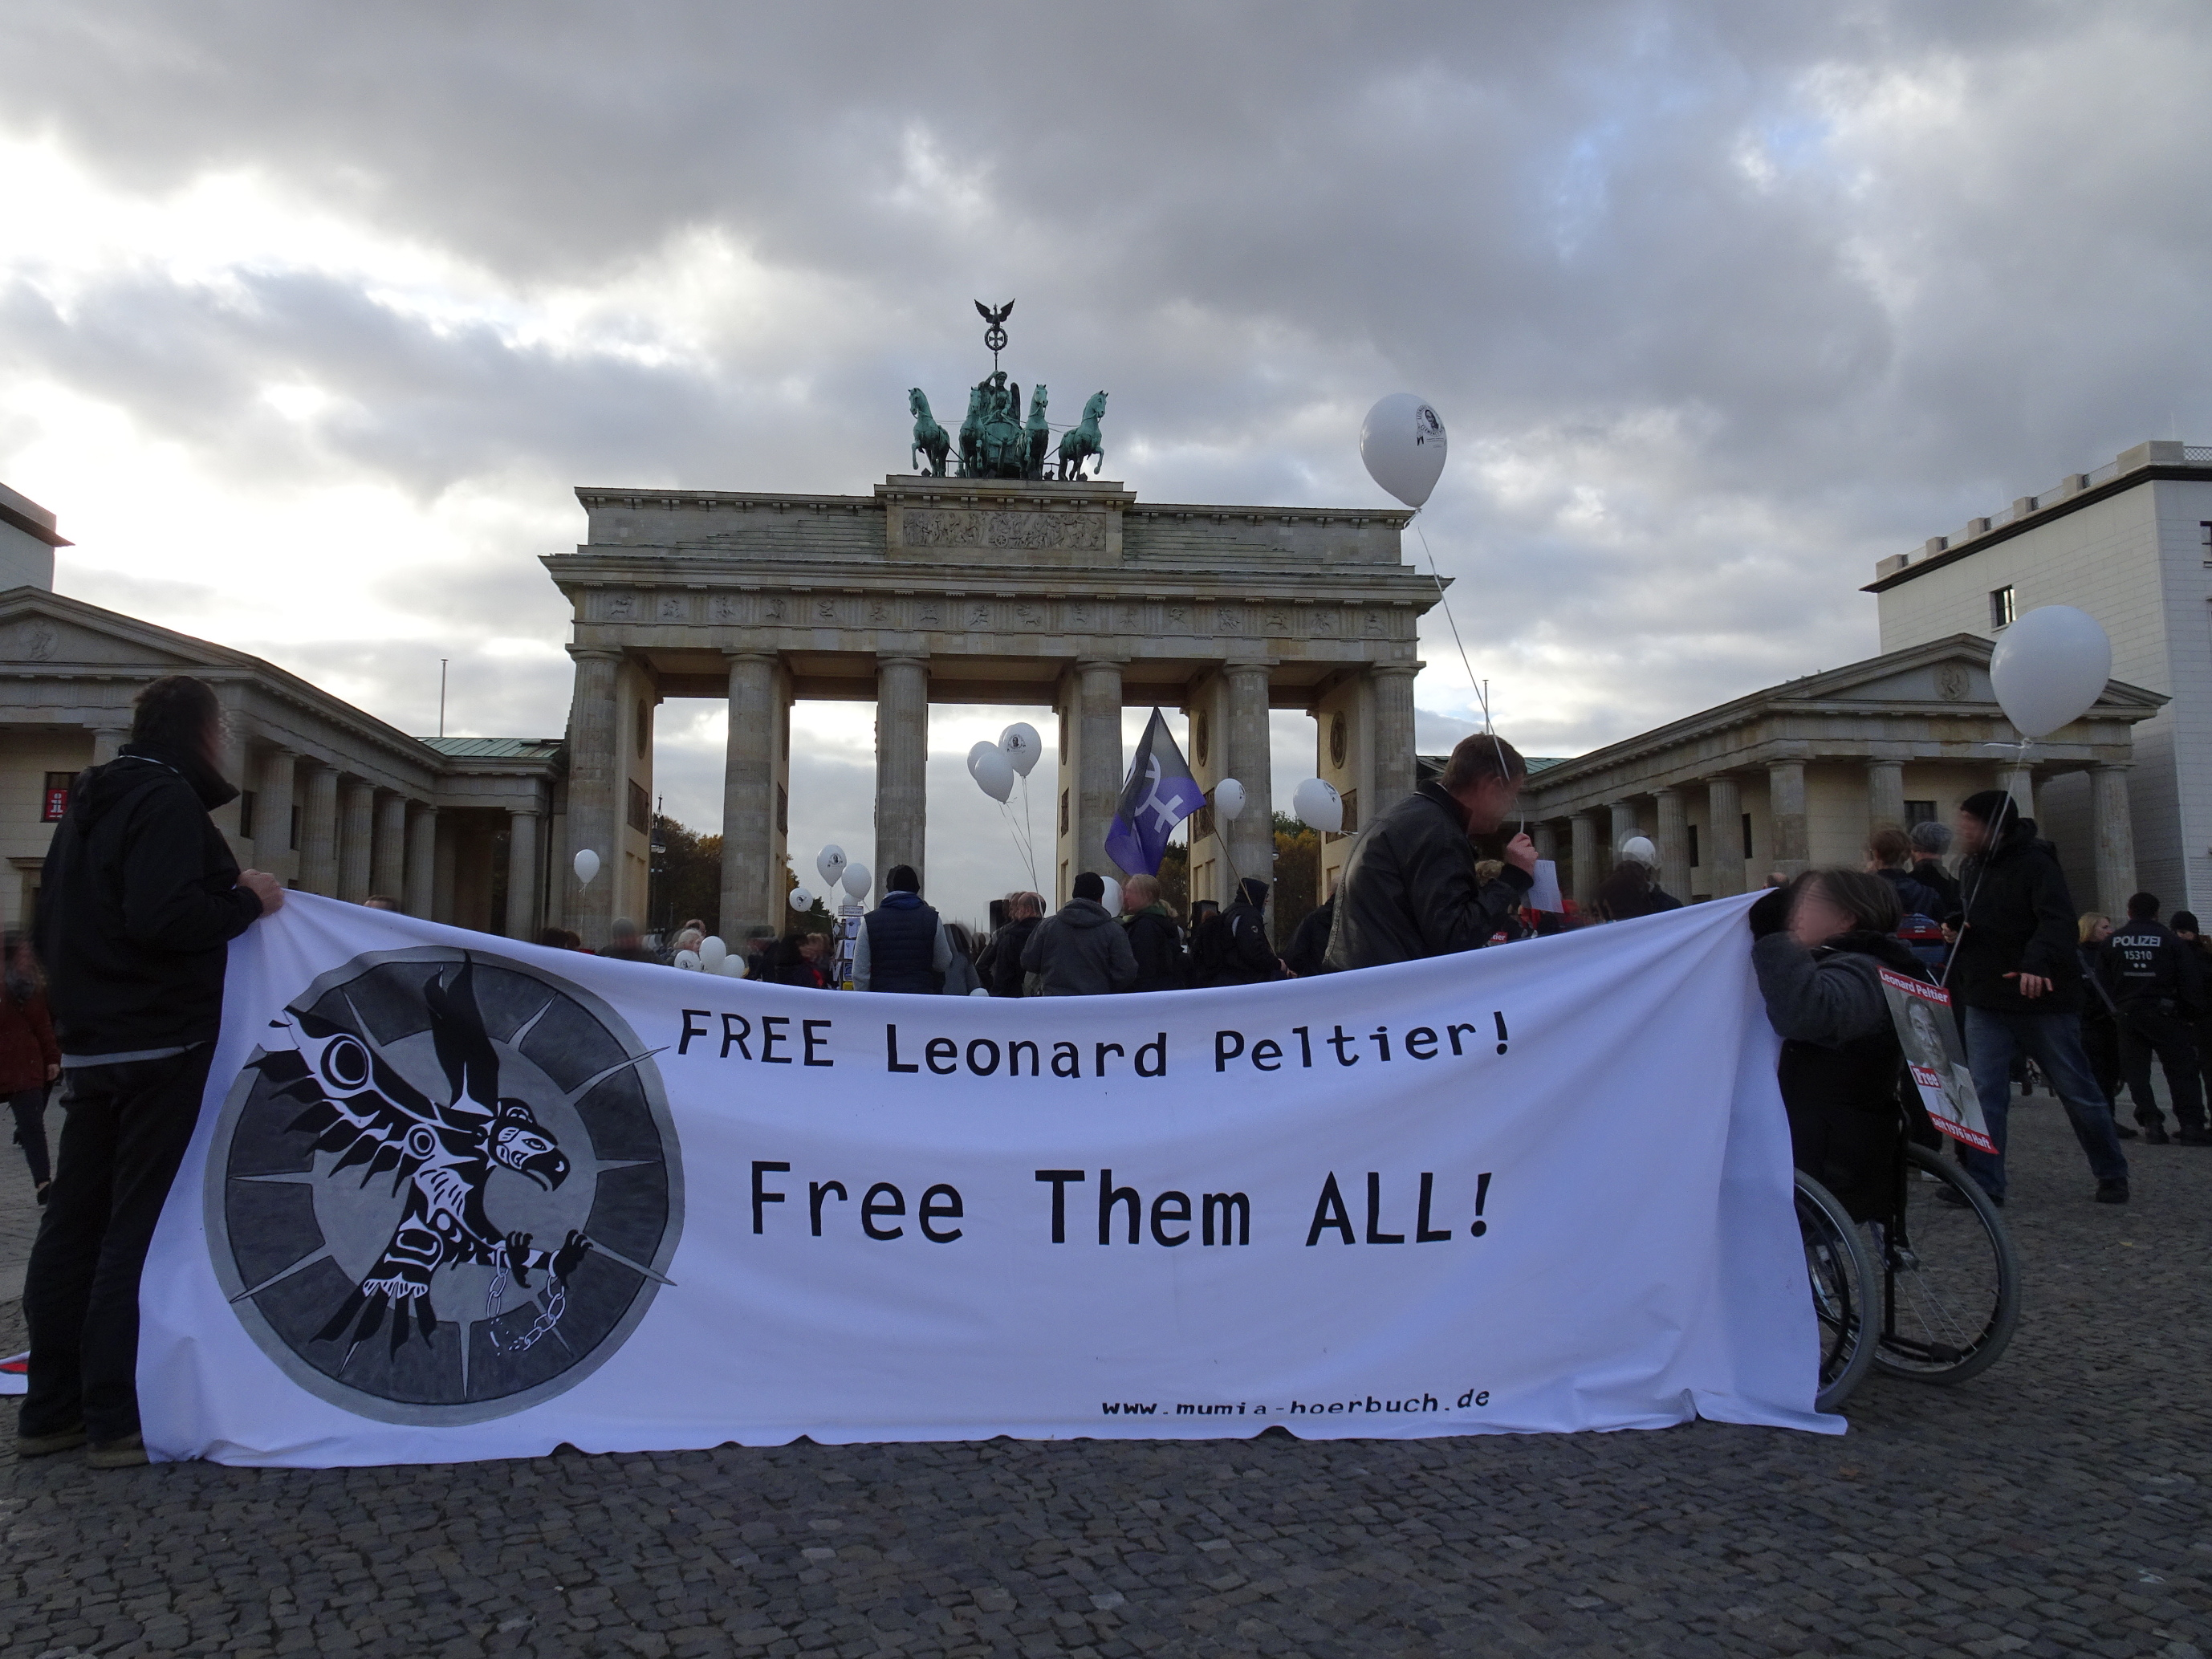 Free Leonard Peltier - FREE THEM ALL!